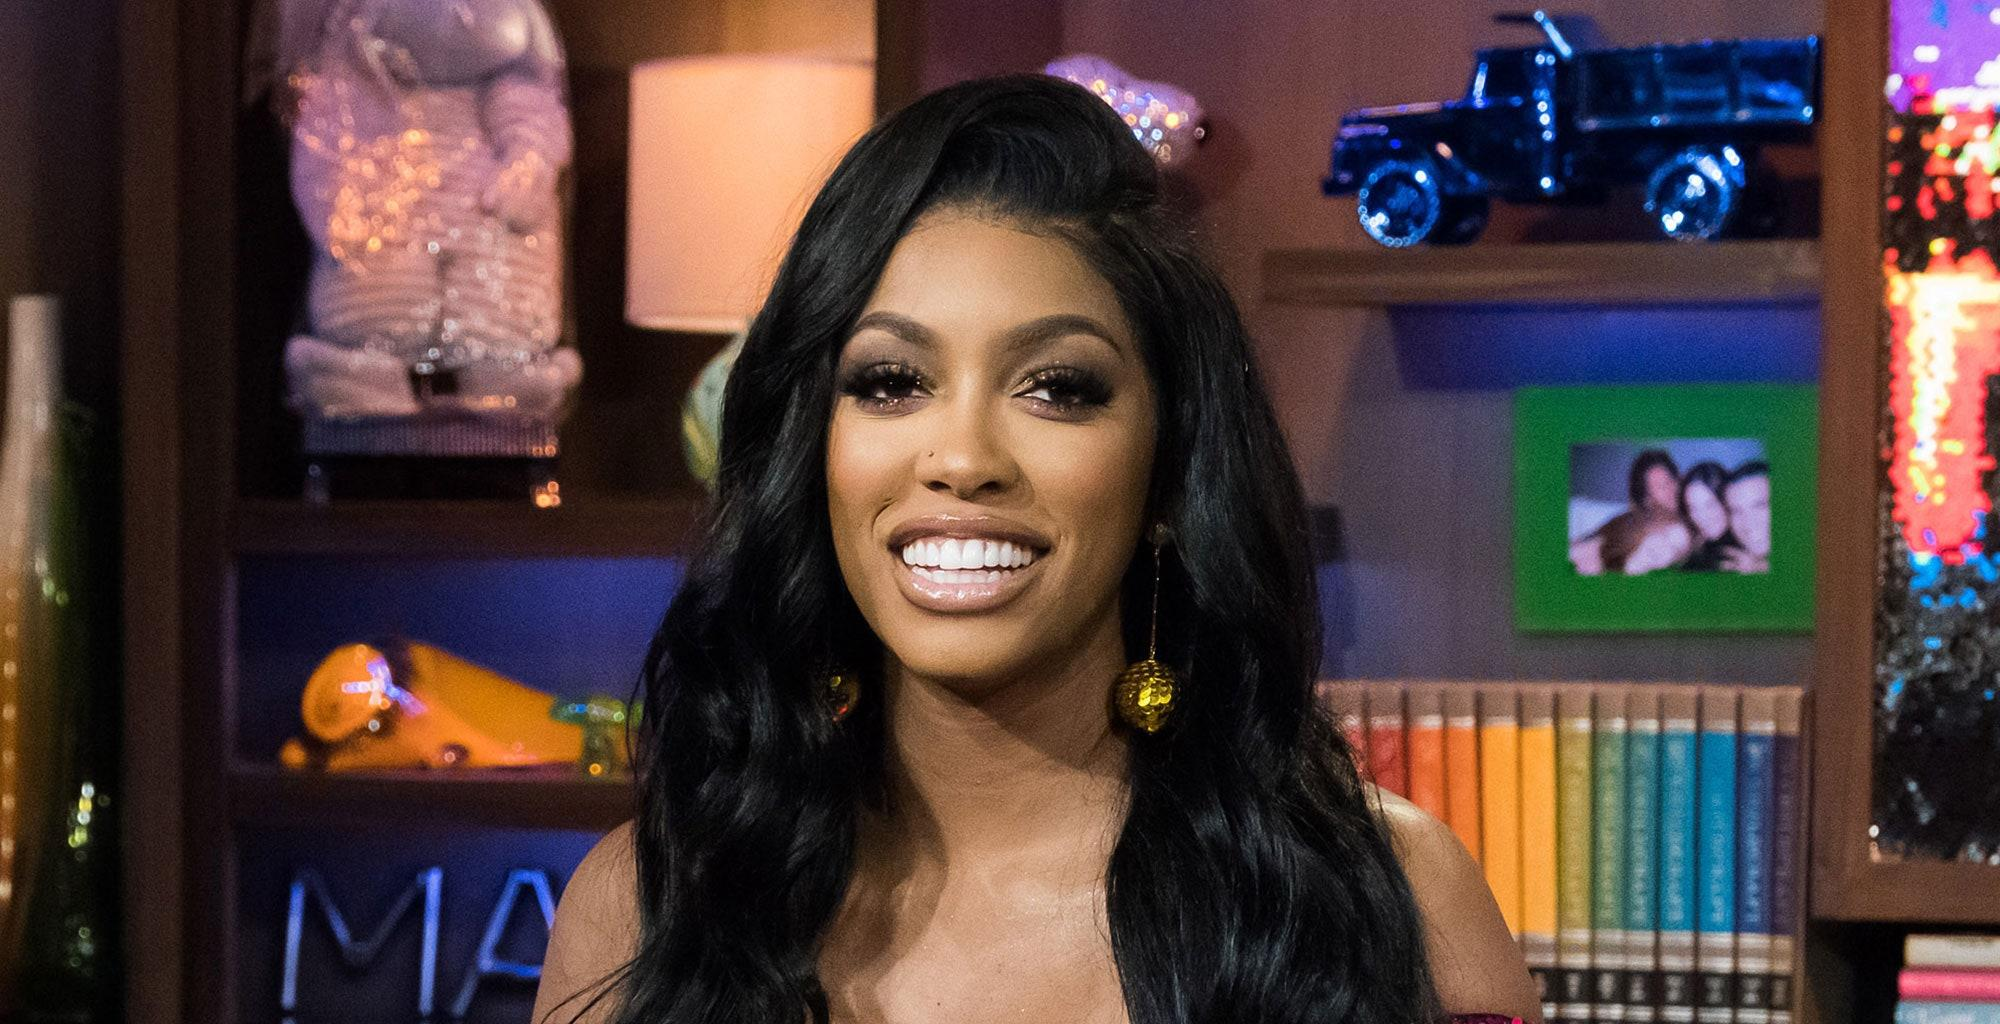 Porsha Williams Shows Fans What She's Working With These Days Following Intense Workout